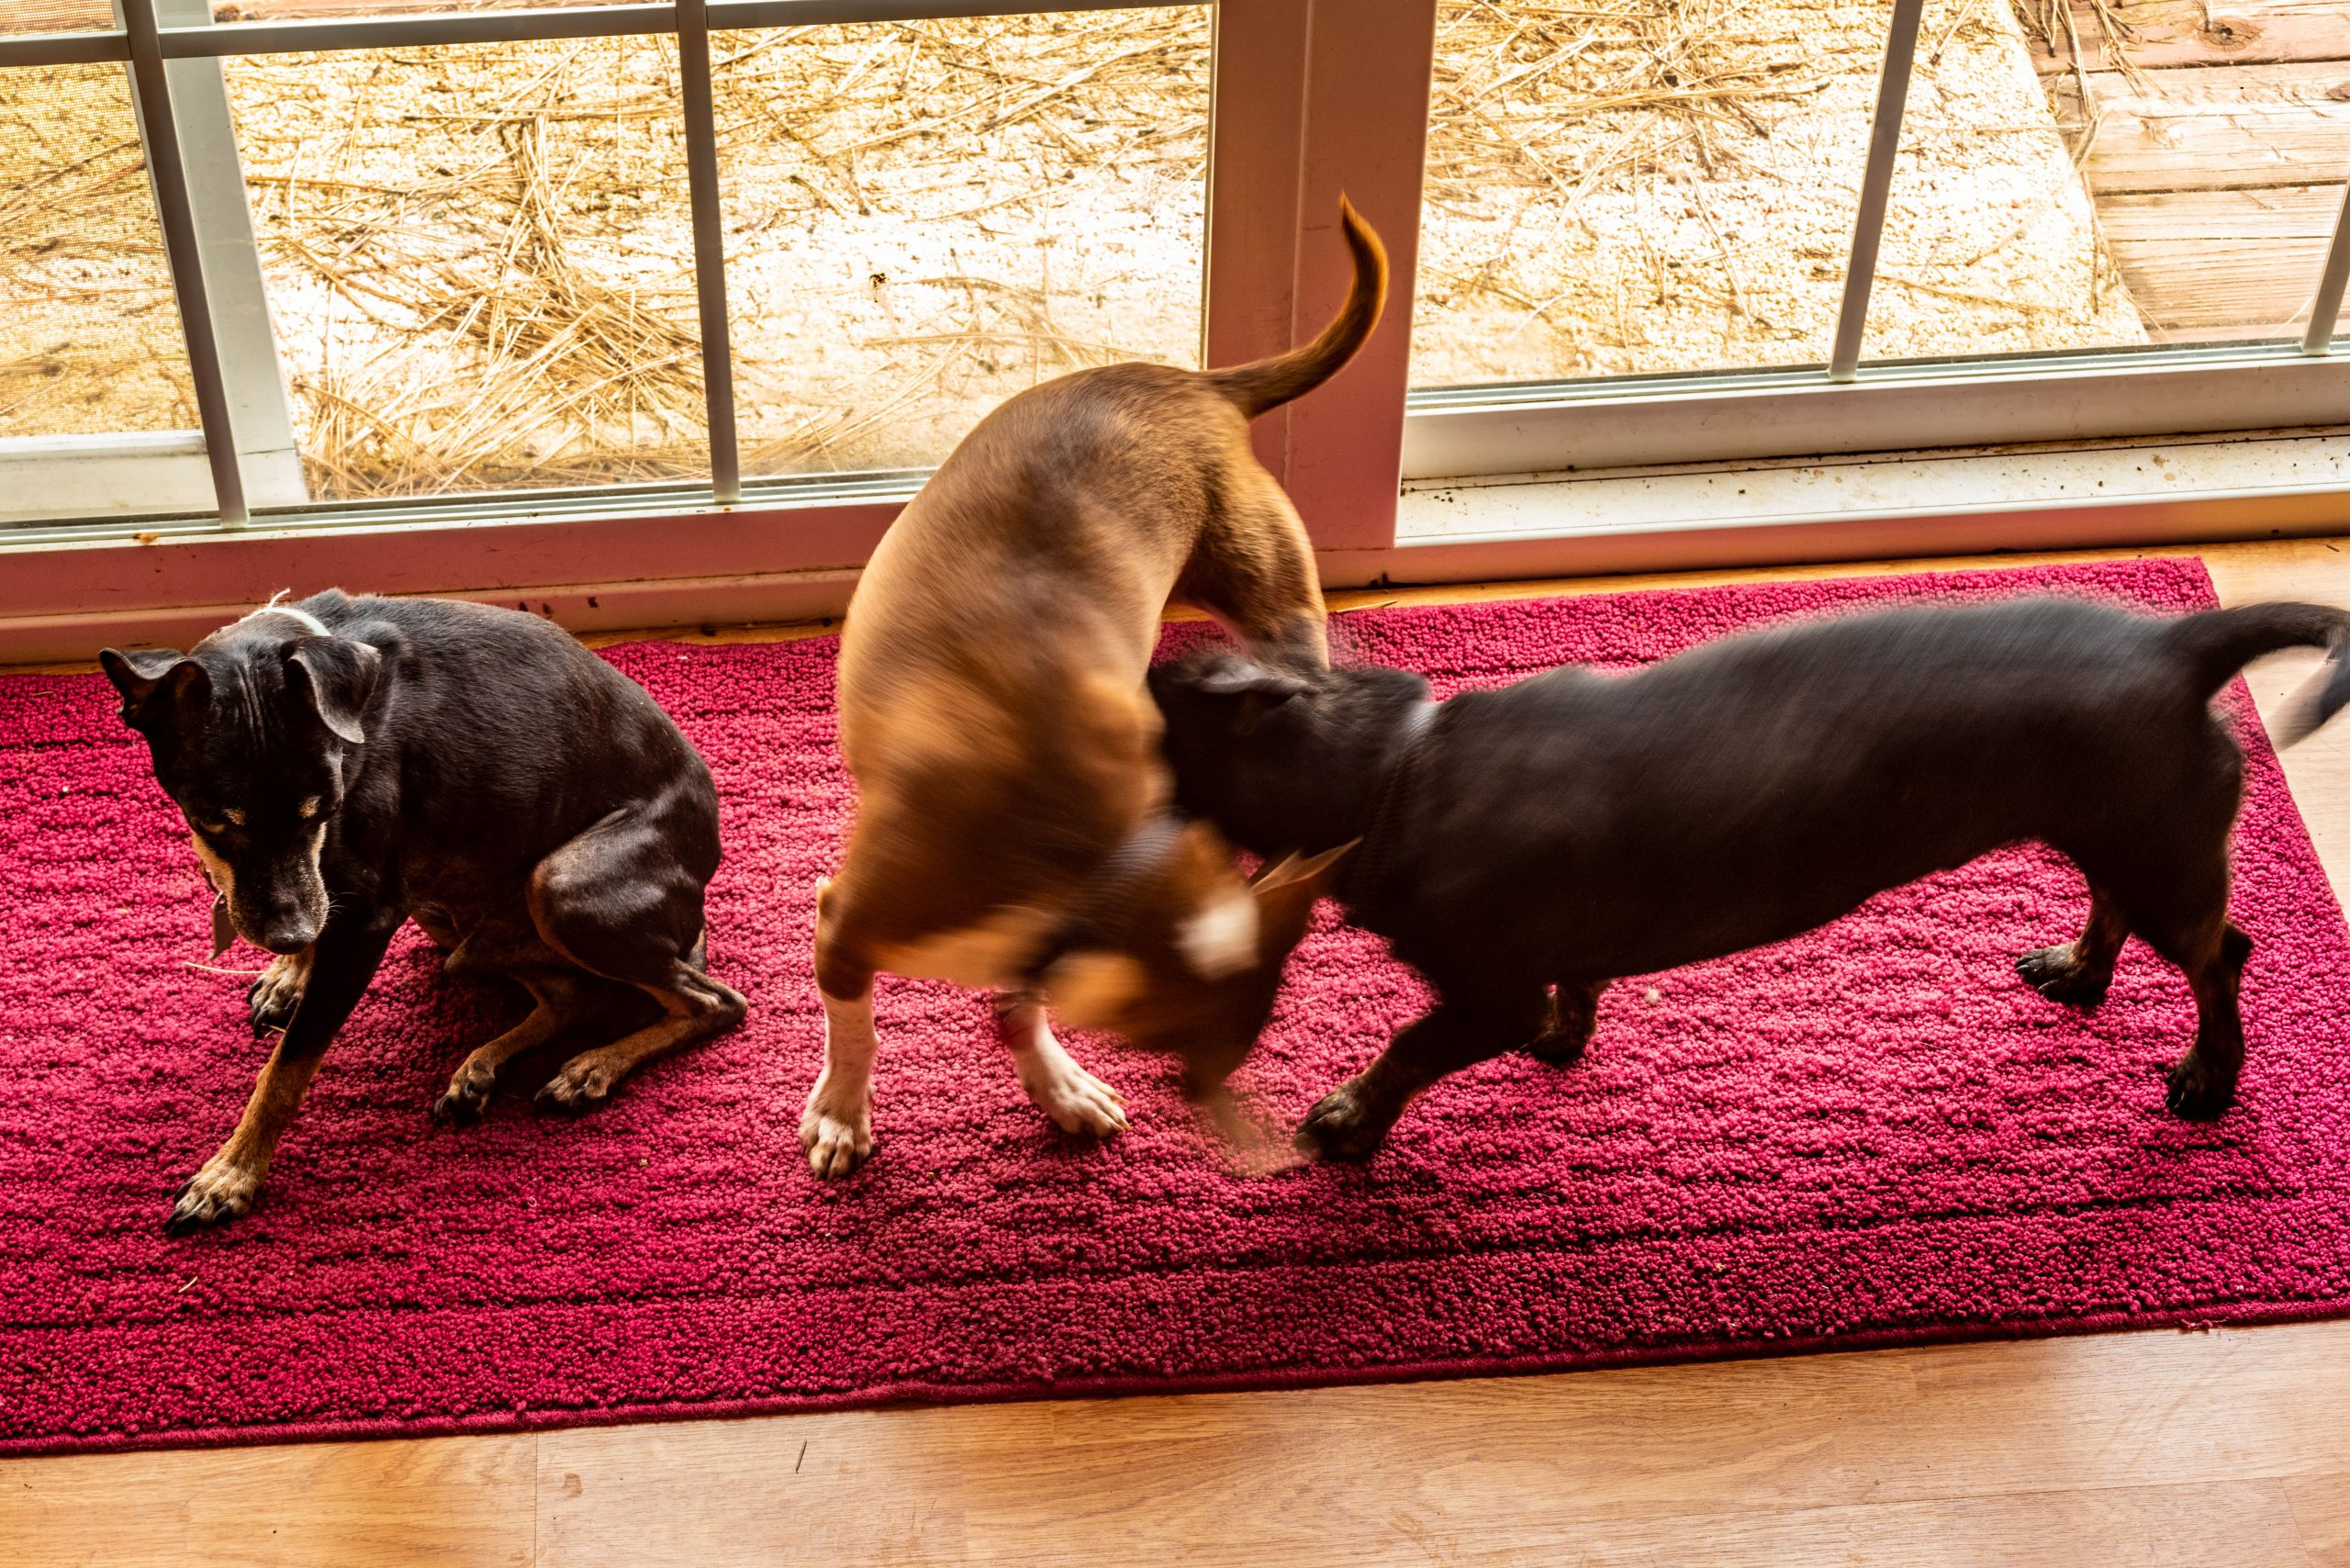 Having Three Dogs at Home